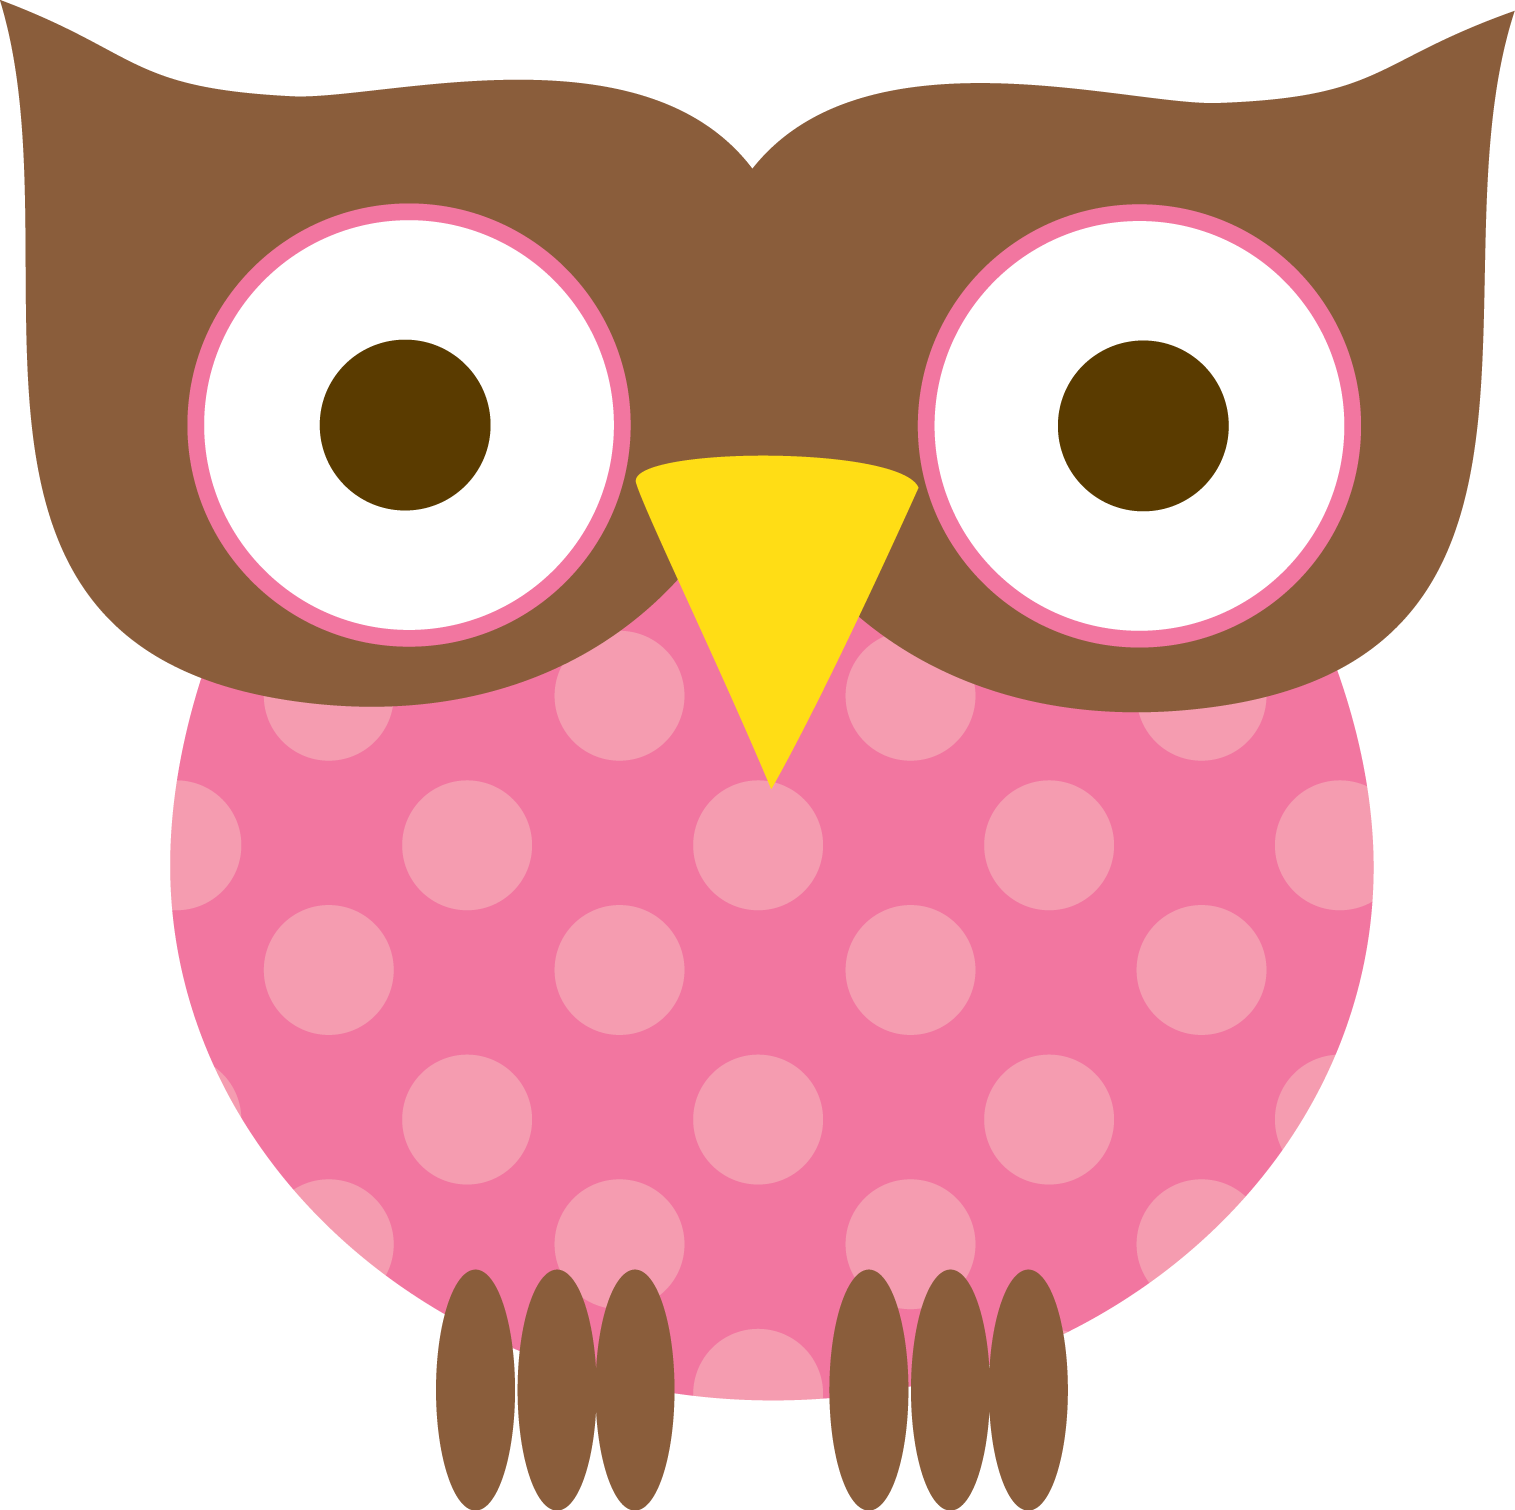 July clipart owl. Photo by daniellemoraesfalcao minus